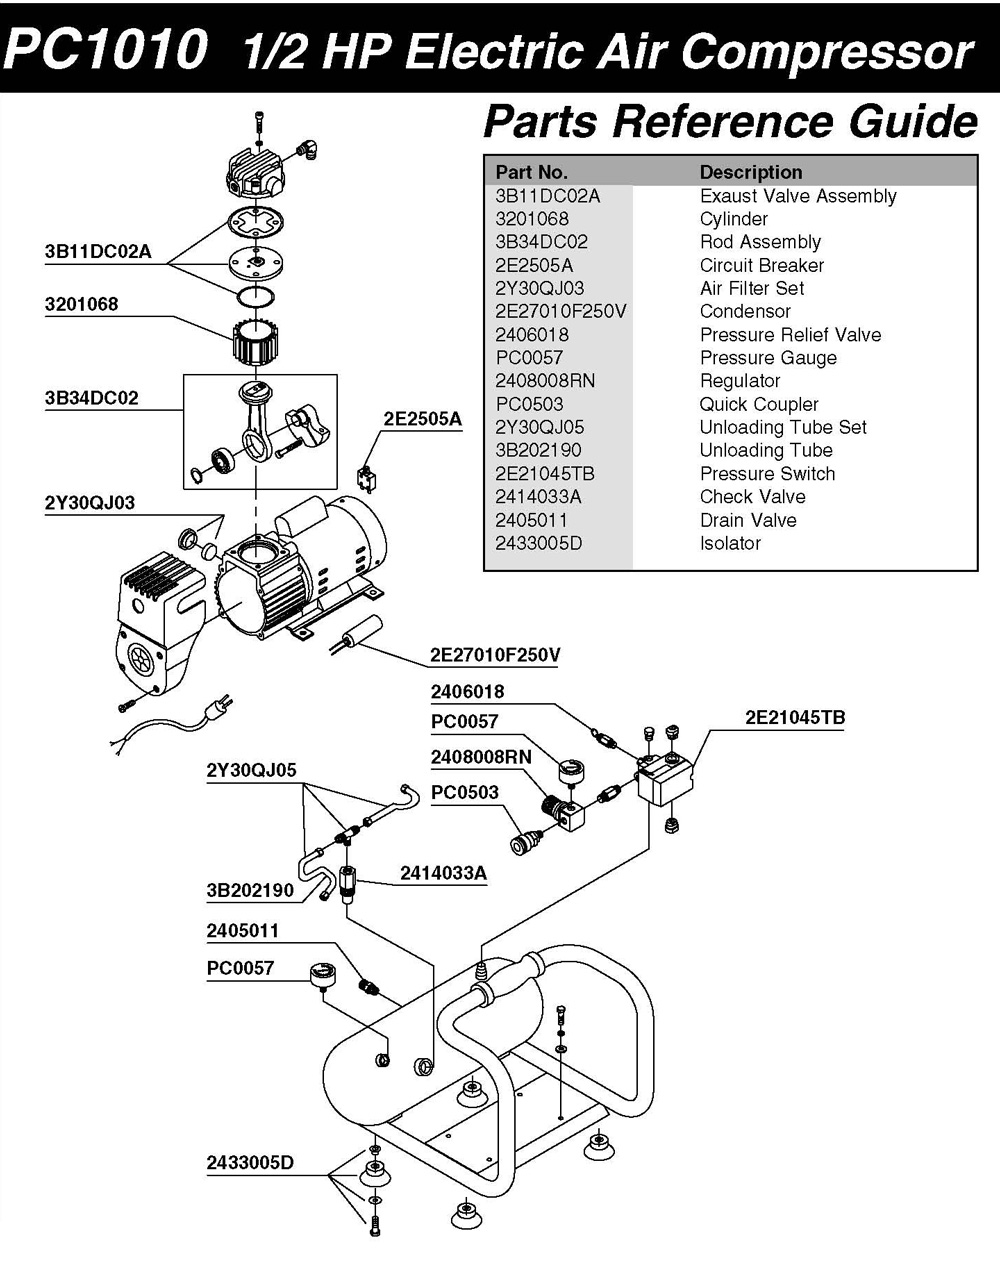 Ingersoll Rand Pressor Wiring Diagram likewise Pressure Switch For Coleman Air  pressor likewise Air  pressor Parts Pc1010 P 75008 besides Oil Bath Electric Repair Parts 109b300 109bl300 B109bl300 22swc 109b300 22 Coleman Powermate Sanborn Parts P 4659 together with Air  pressor Parts 3z323e P 52671. on sanborn compressor wiring diagram